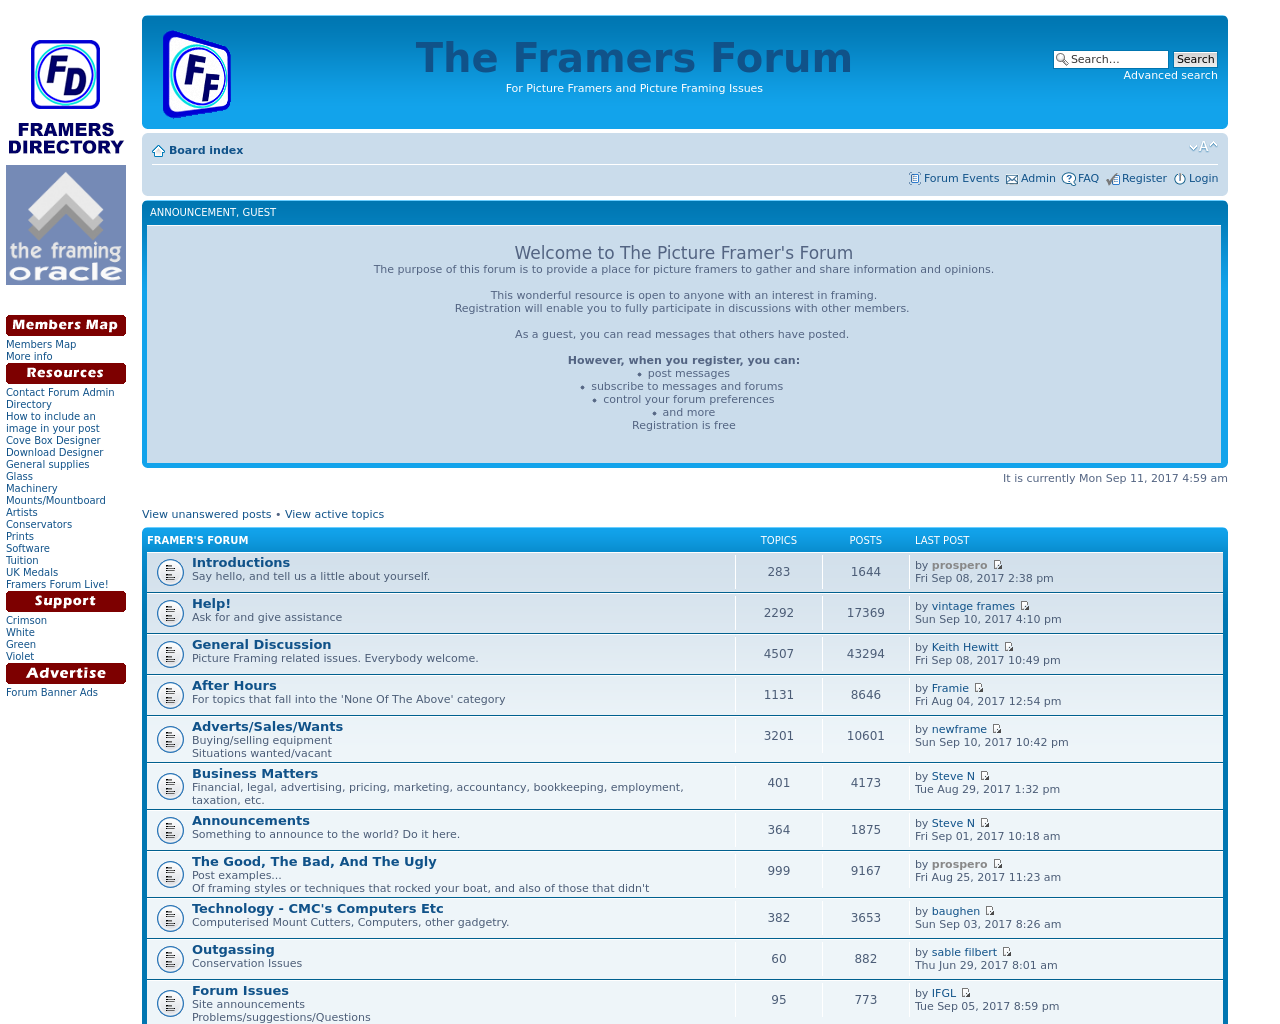 The-Framers-Forum-Advertising-Reviews-Pricing